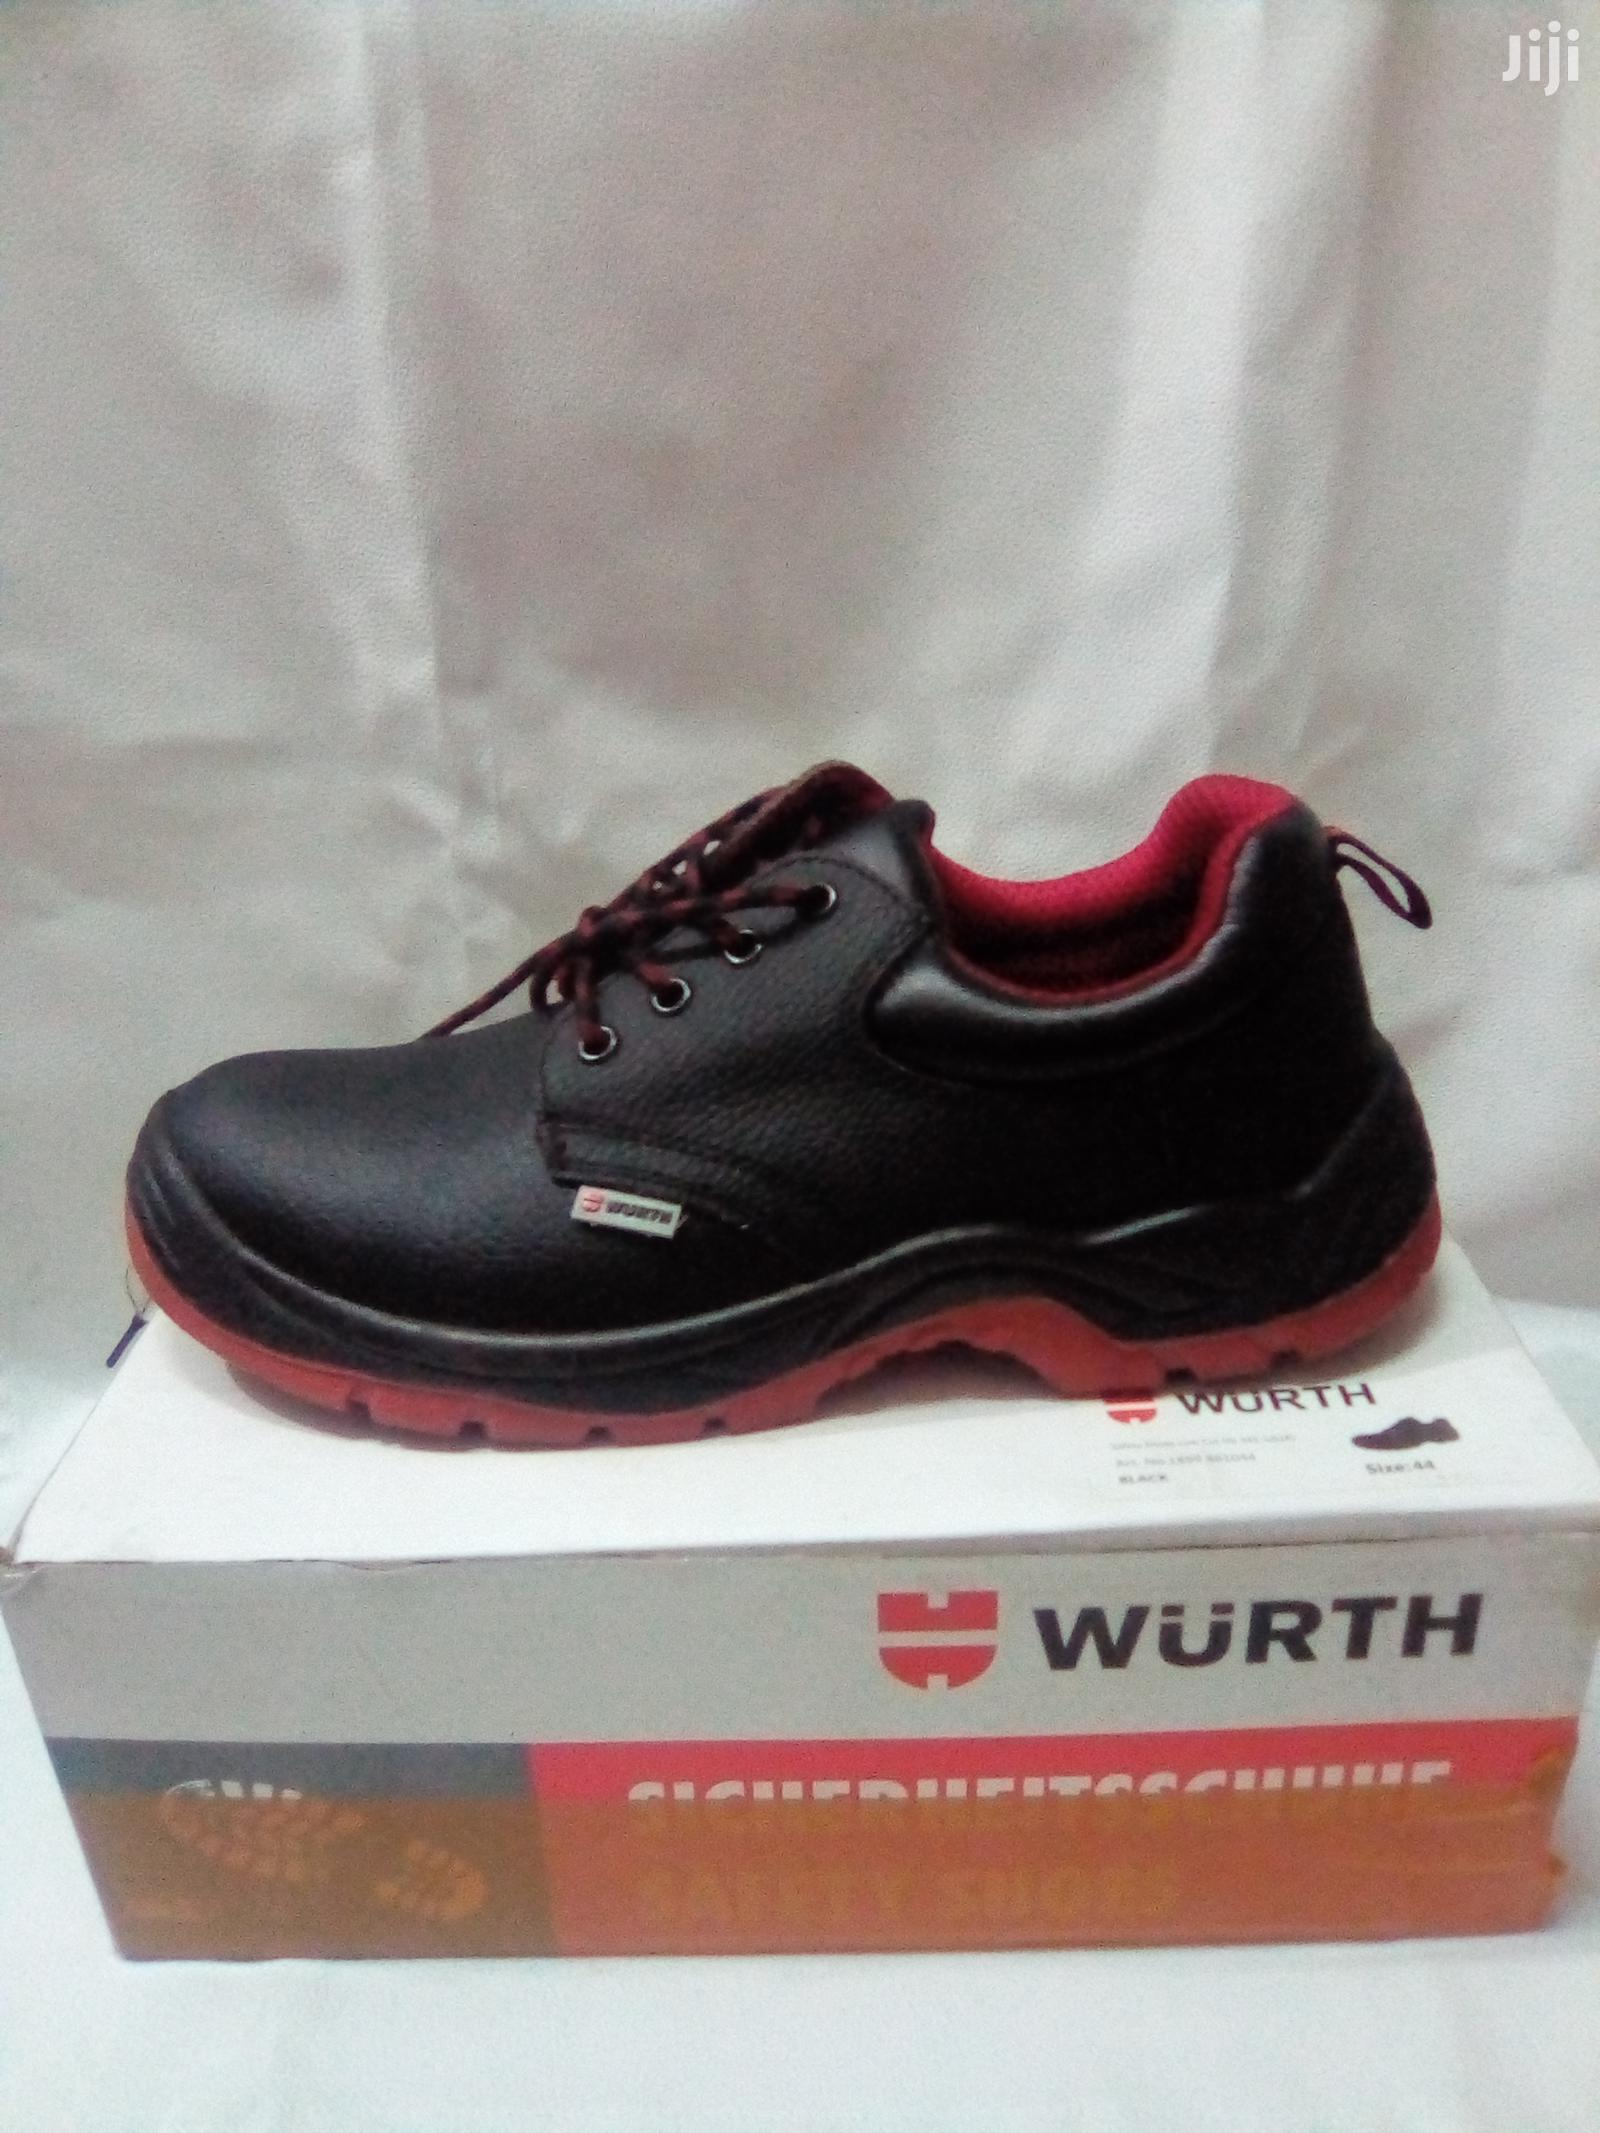 Wurth Safety Work Boot | Shoes for sale in Nairobi Central, Nairobi, Kenya